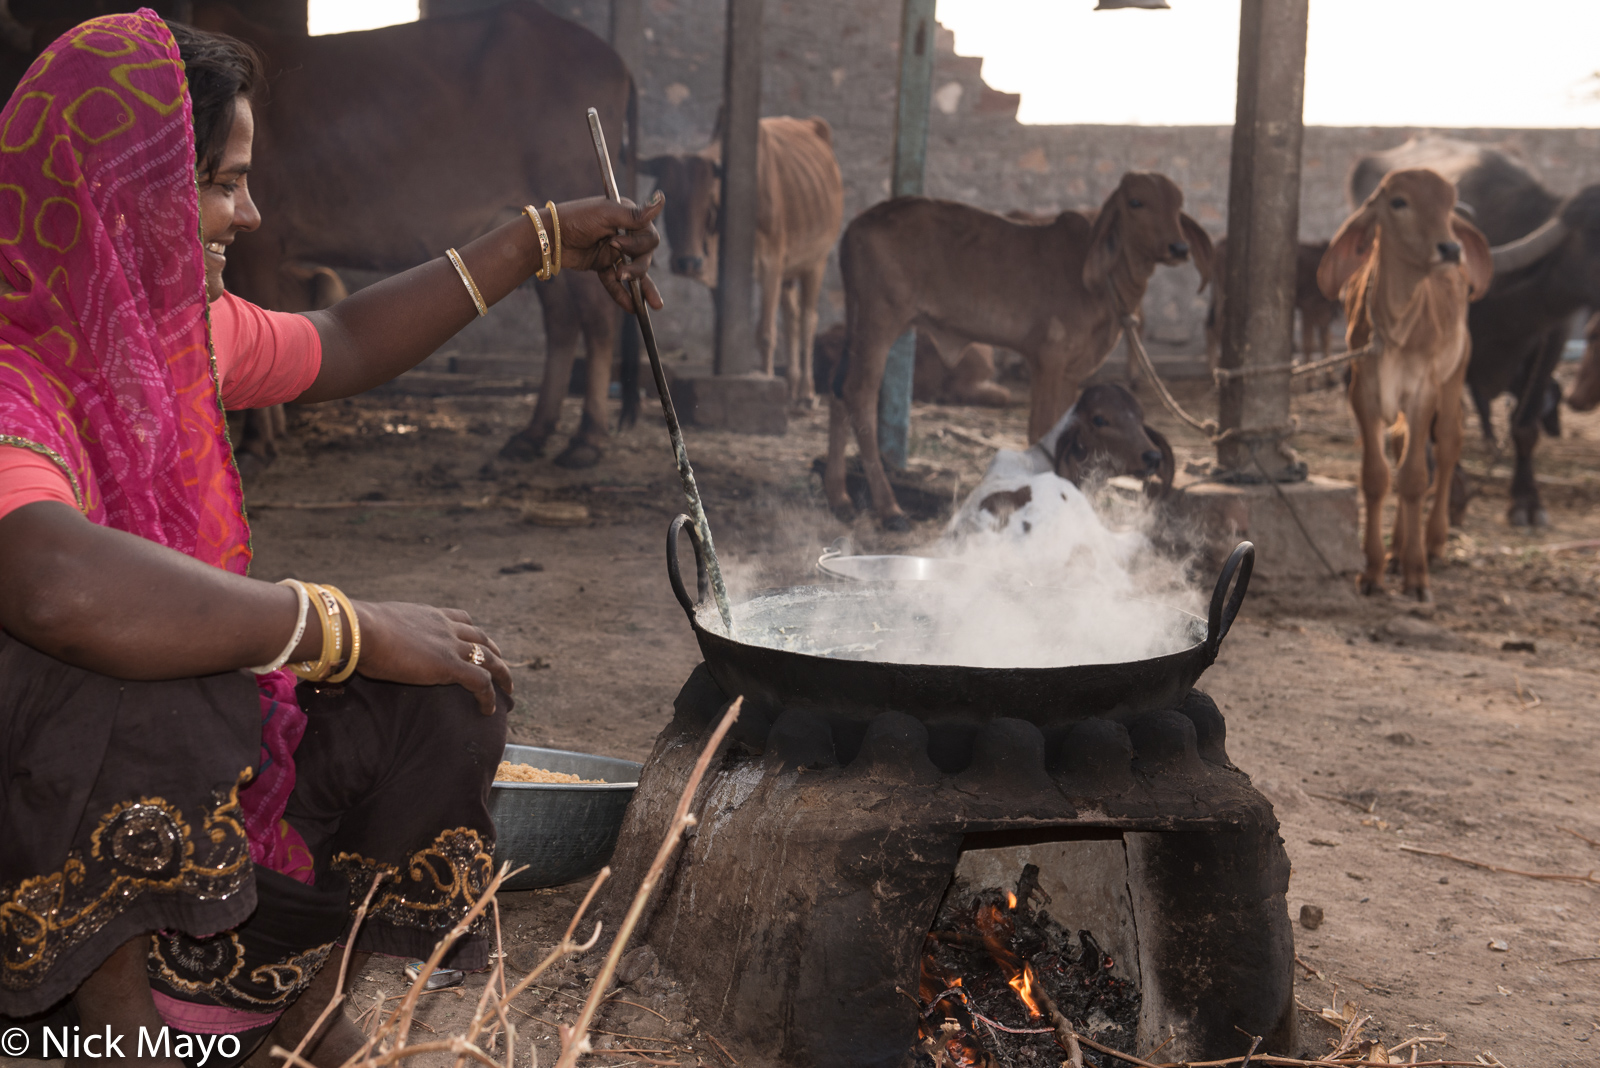 Cooking, Cow, Gujarat, Hearth, India, Wok, photo